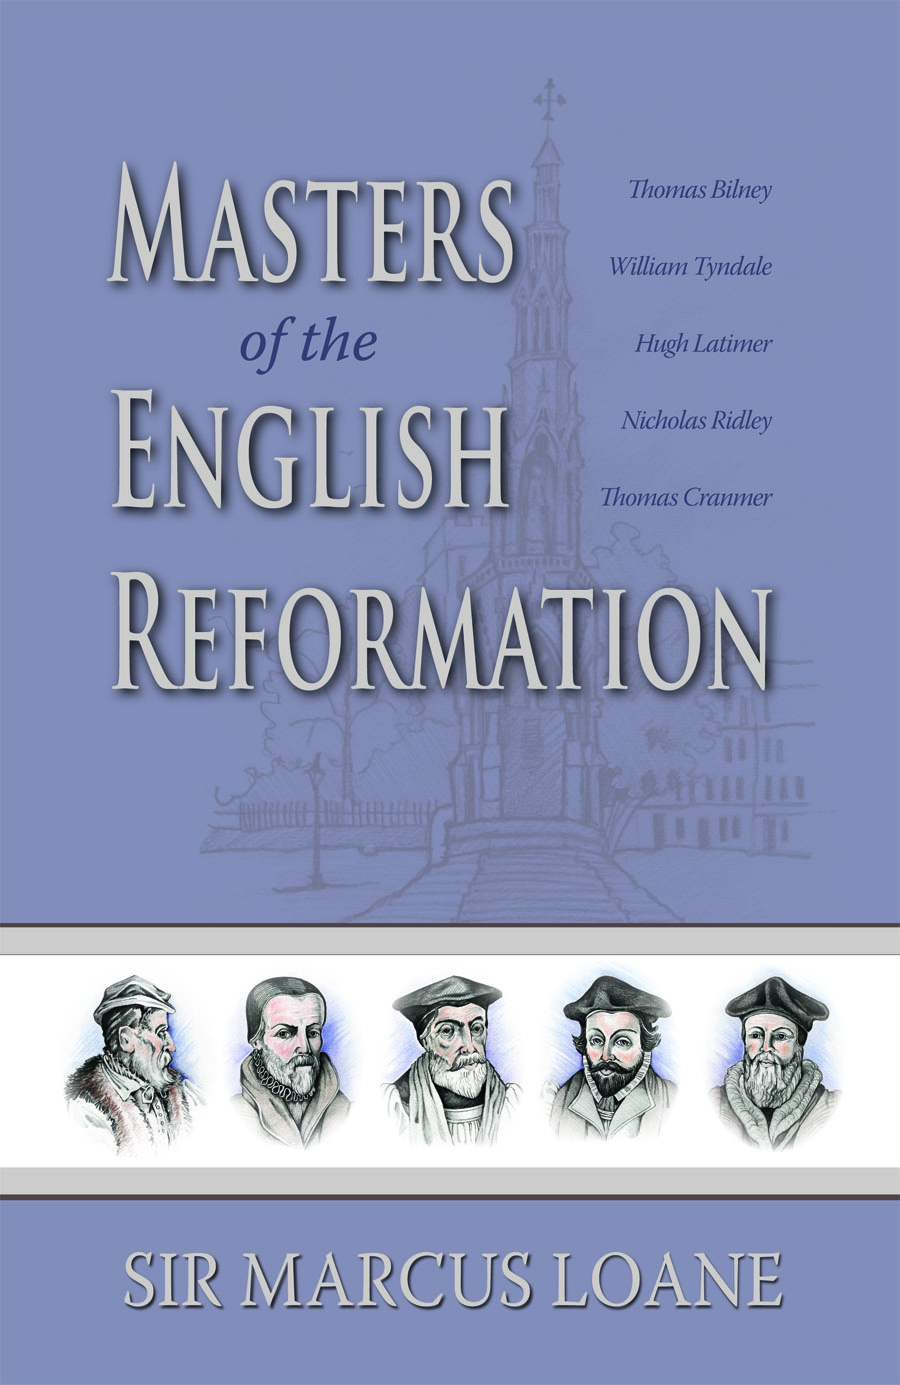 Masters of the English Reformation